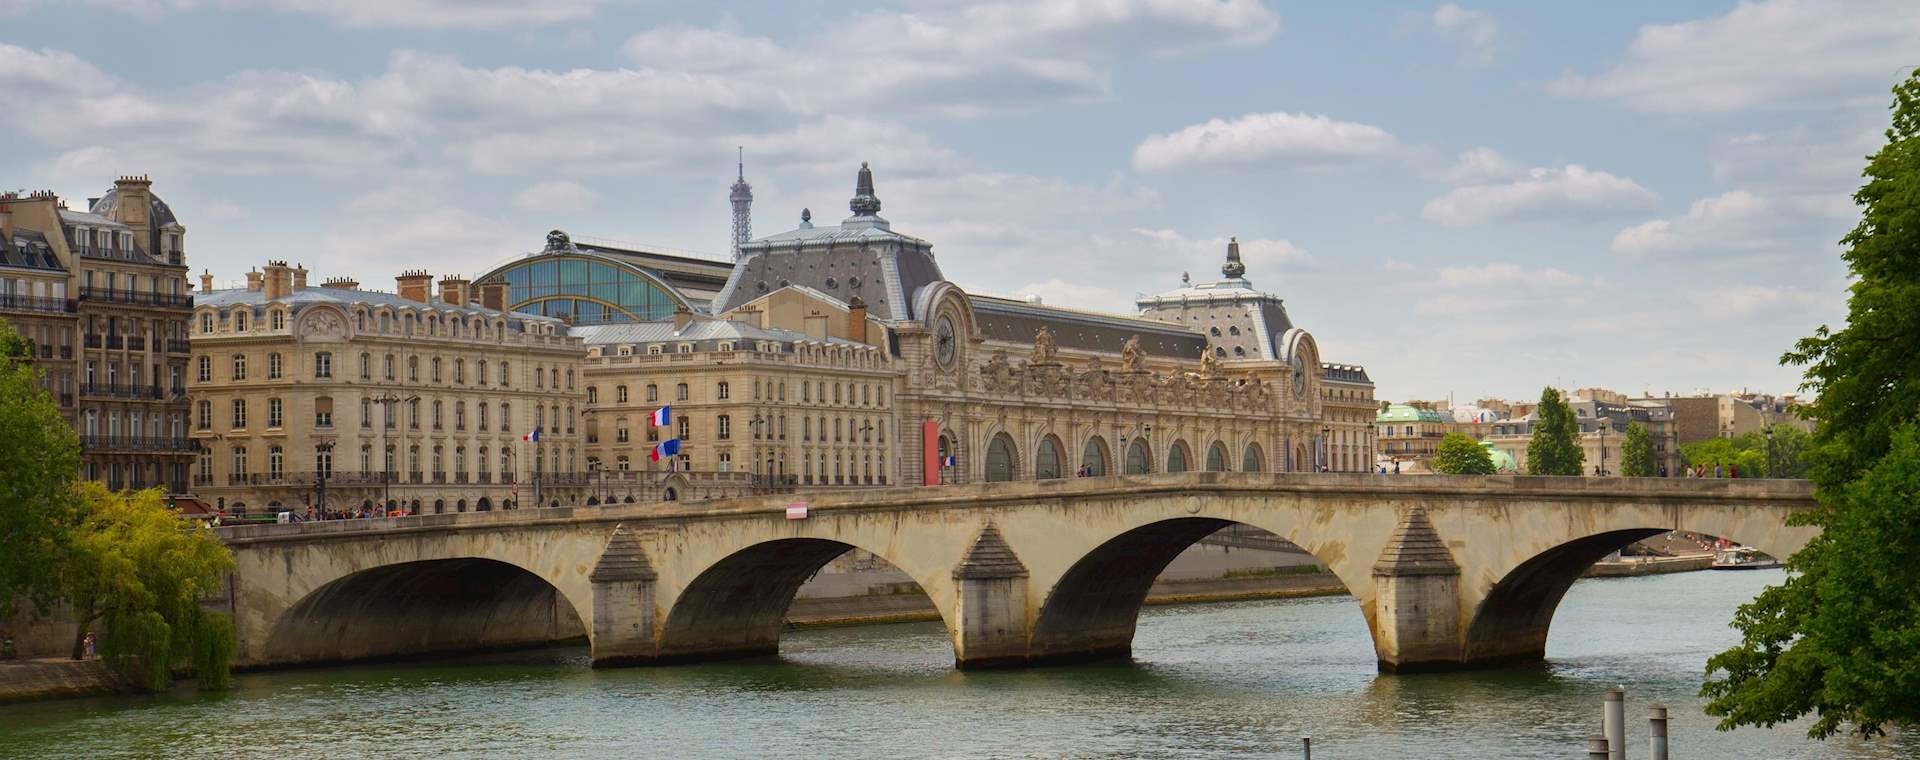 Private Giants of Impressionism at the Musée d'Orsay Tour